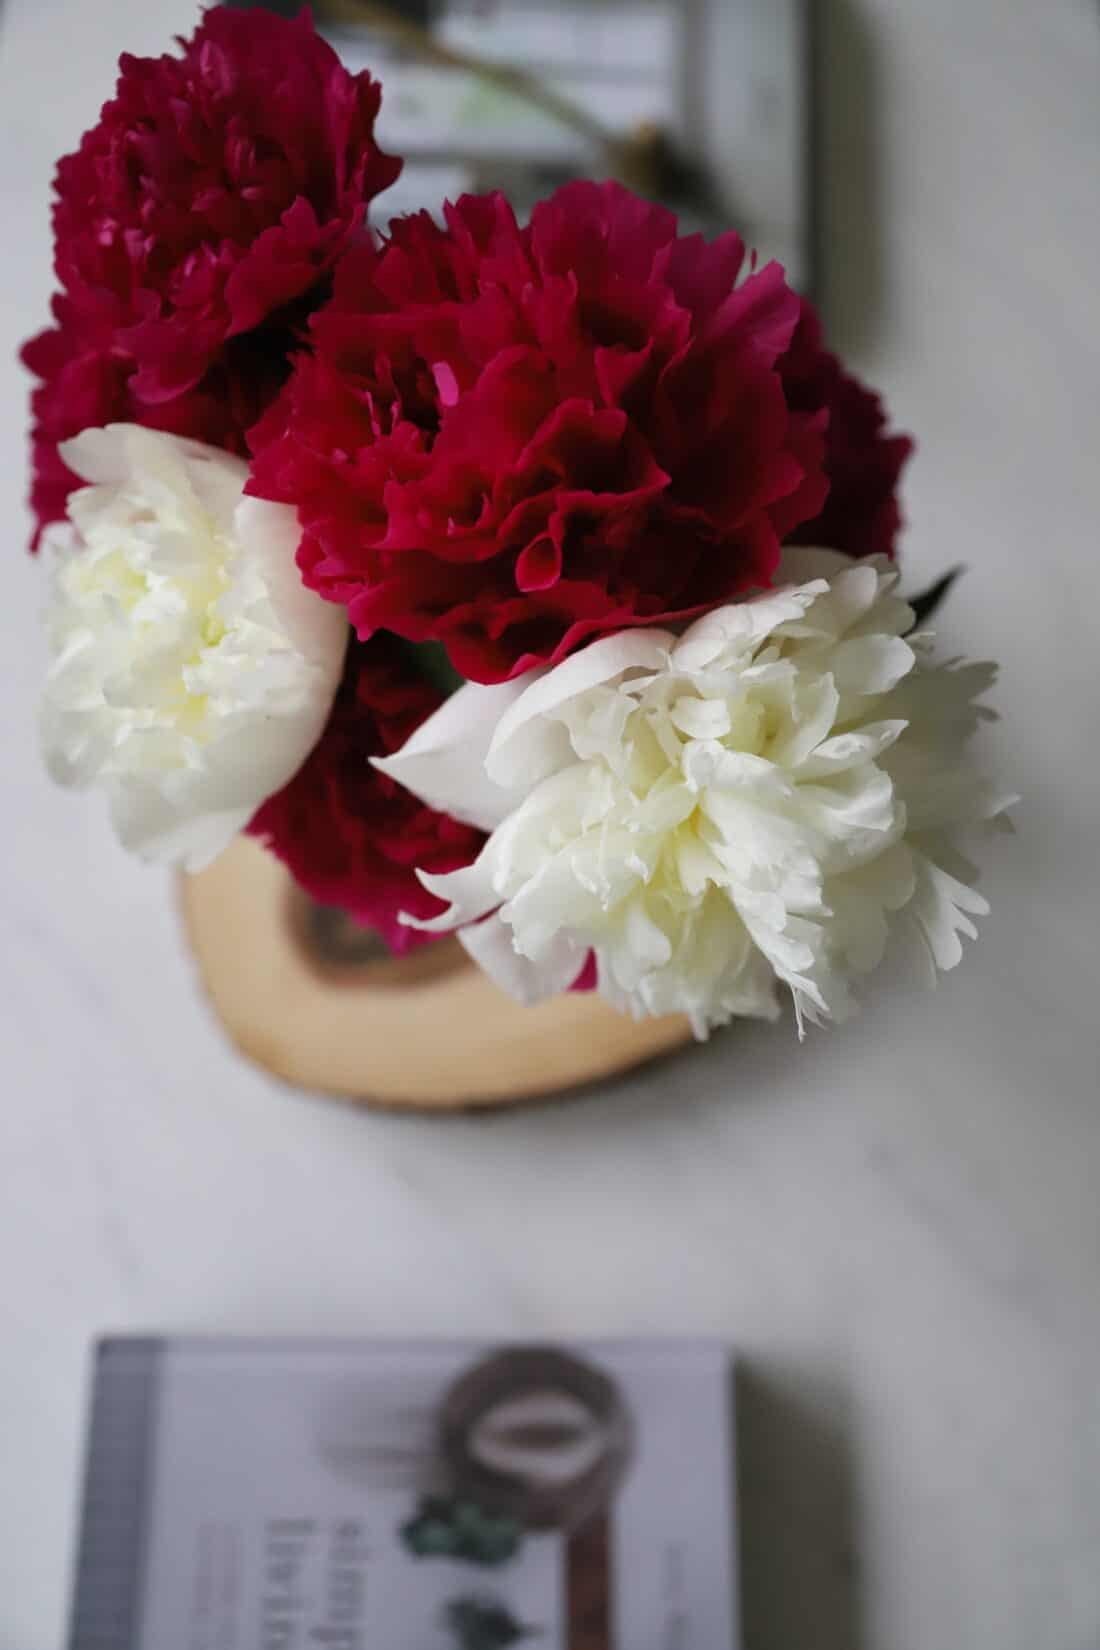 vase of peonies cut from a garden